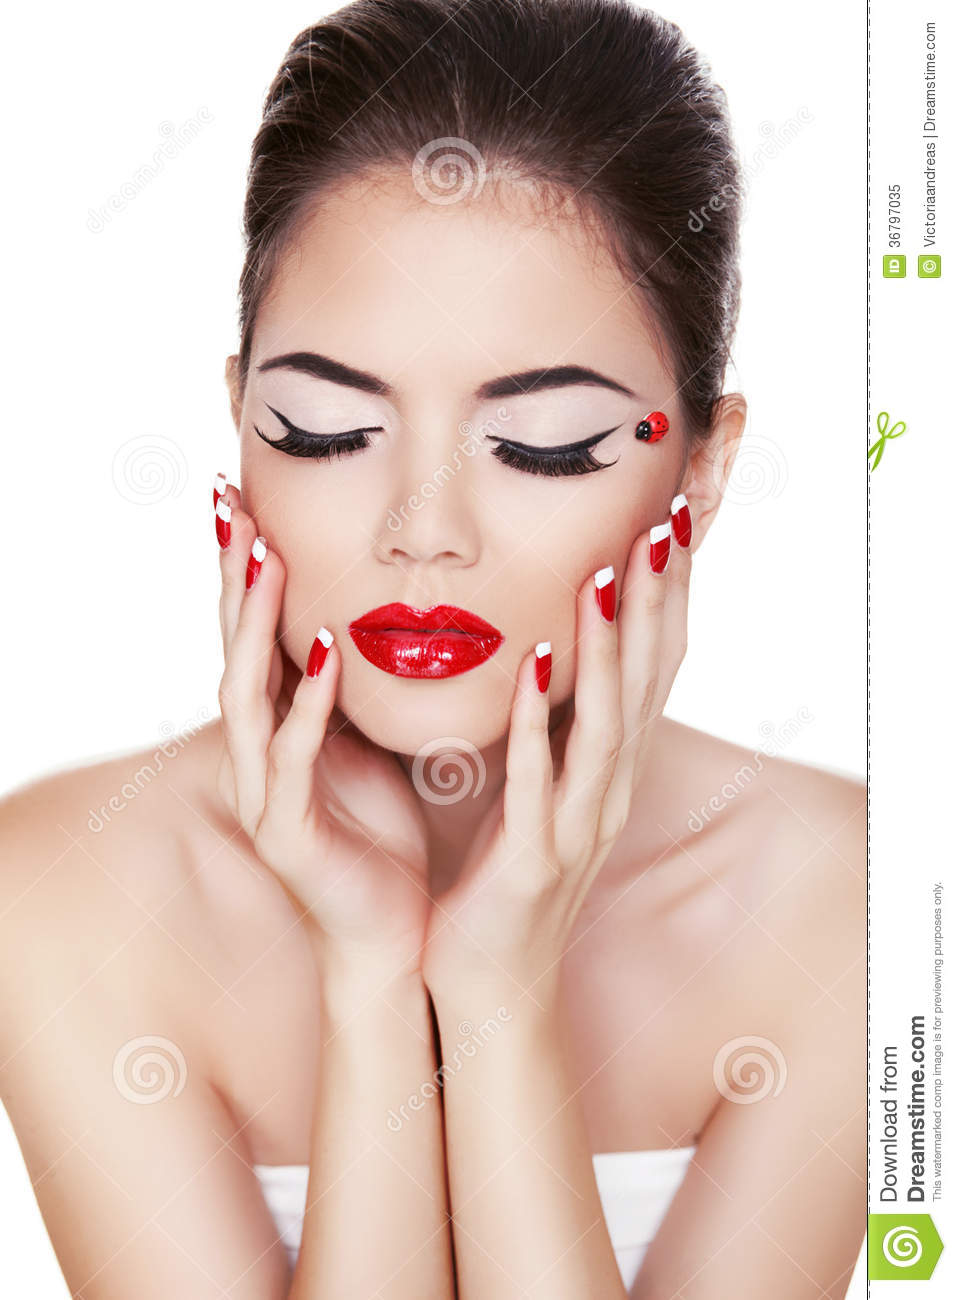 Luxury Brunette Woman With Red Lips Make Up Eyeliner Clean Skin Royalty Free Stock Photo